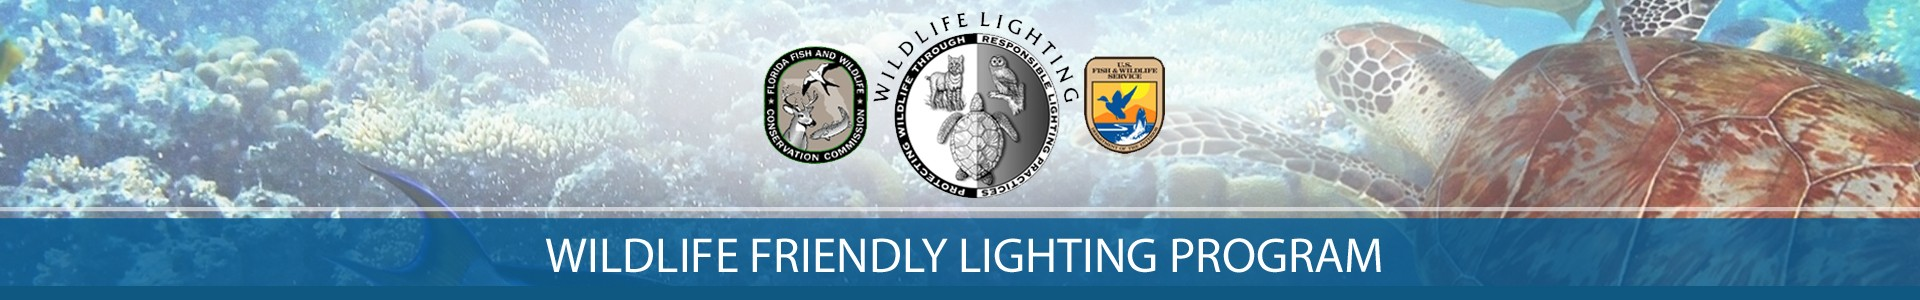 Wildlife Friendly Lighting Program